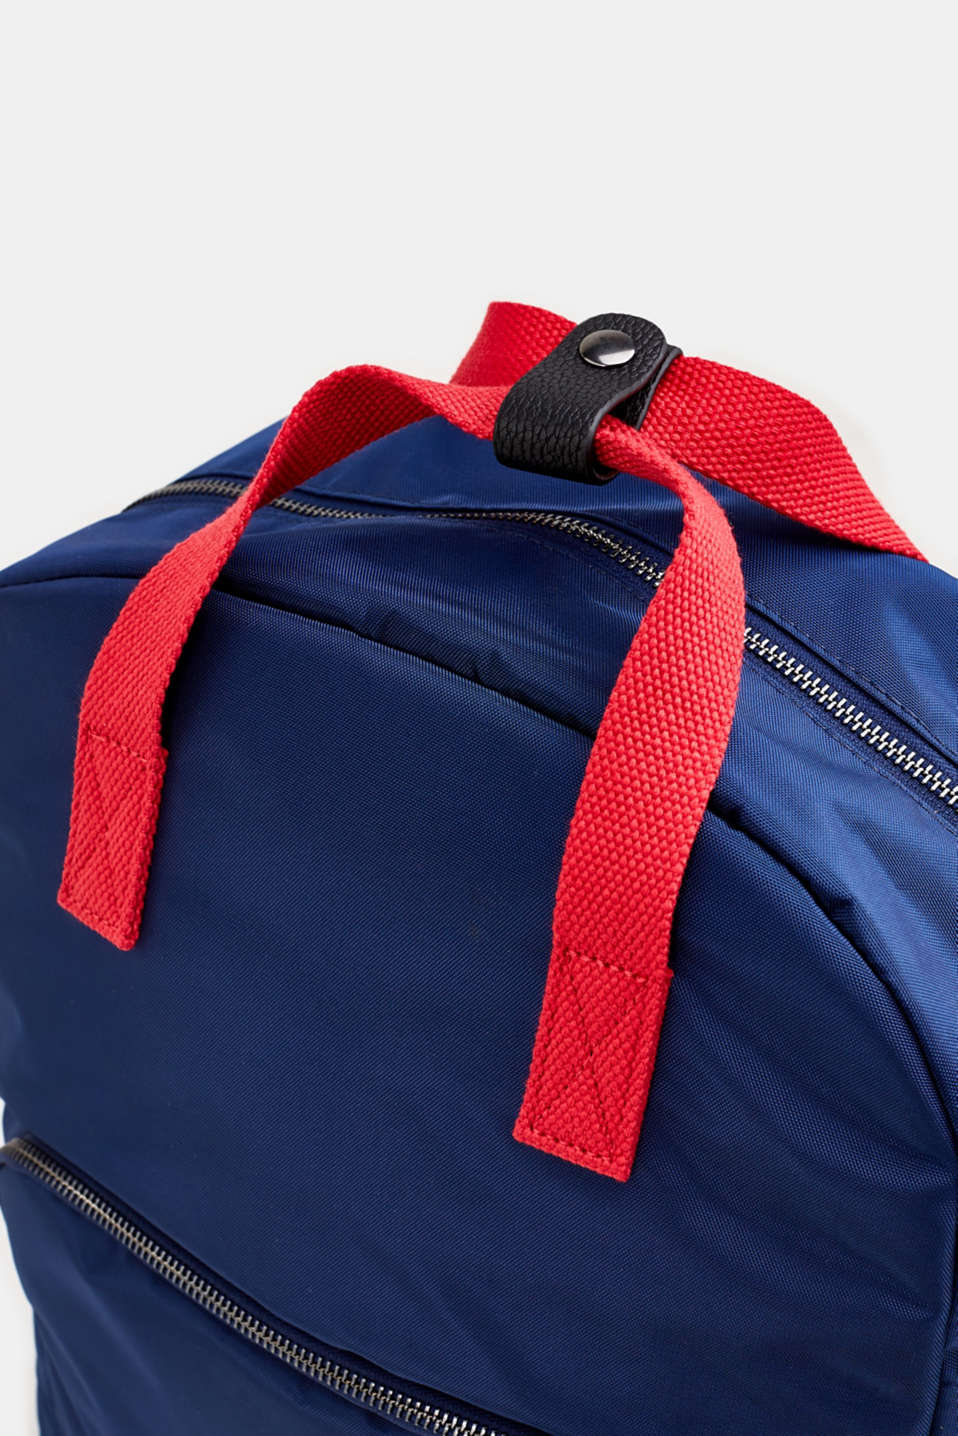 Nylon rucksack, NAVY, detail image number 3